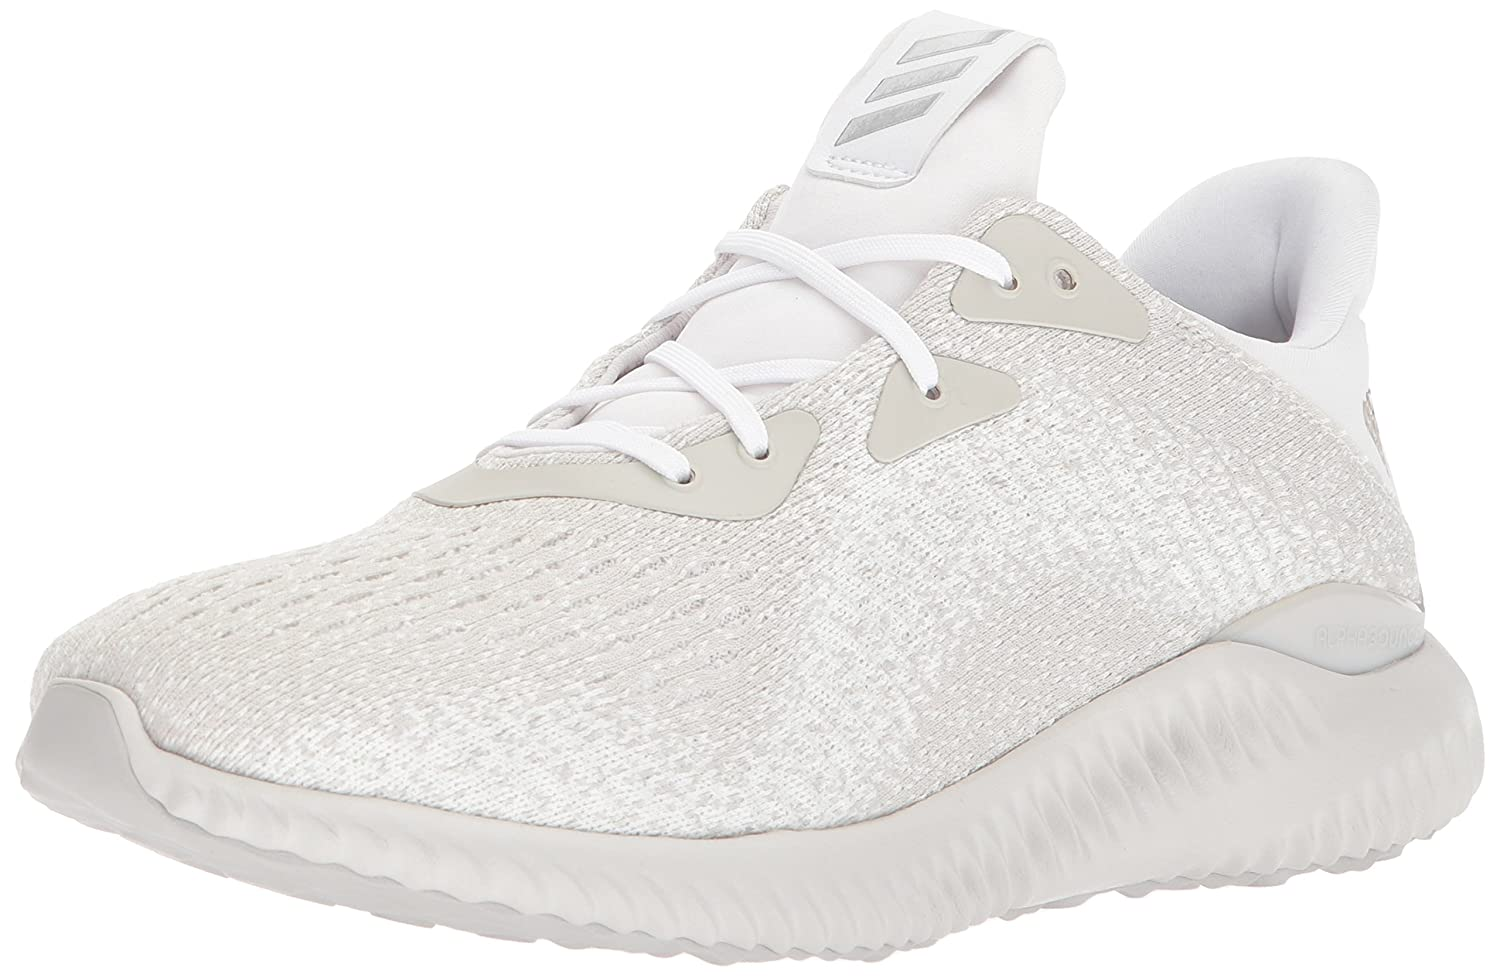 adidas Men's Alphabounce Em M Running Shoe B071F7W3NM 7 D(M) US|White/Metallic Silver/Legacy